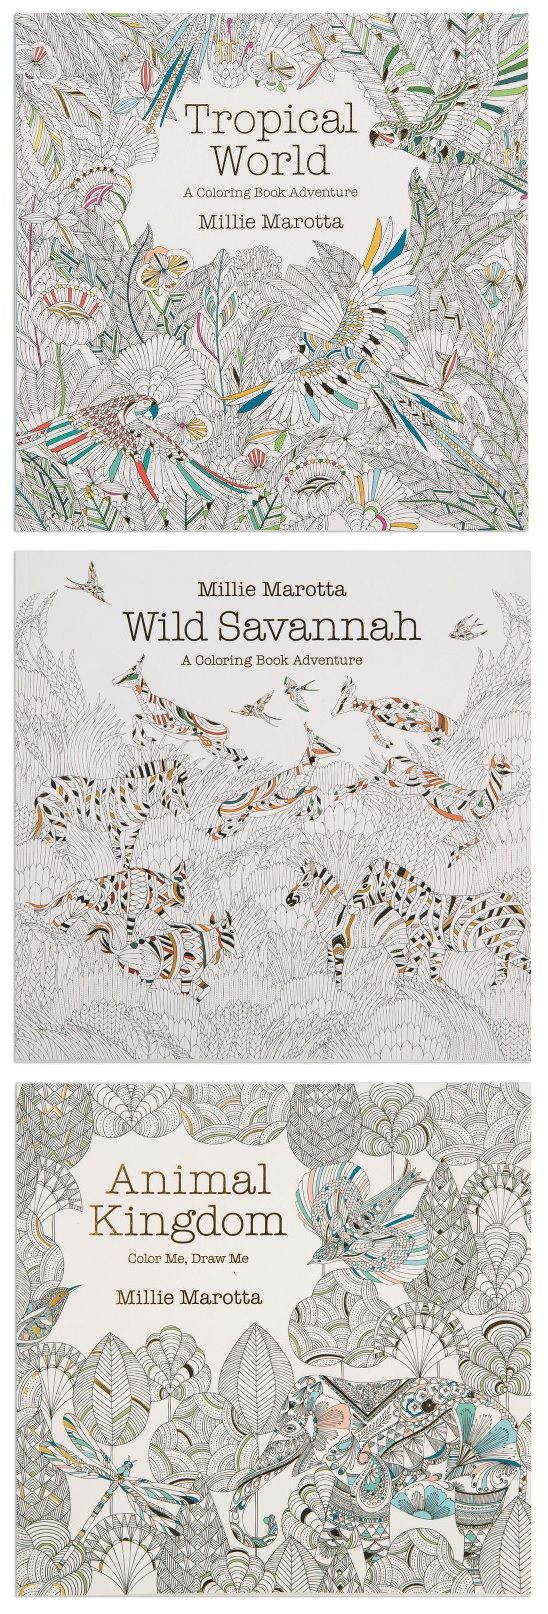 Color me draw me animal kingdom book - Millie Marotta Is One Of The Most Popular Creators Of Adult Coloring Books Including Tropical